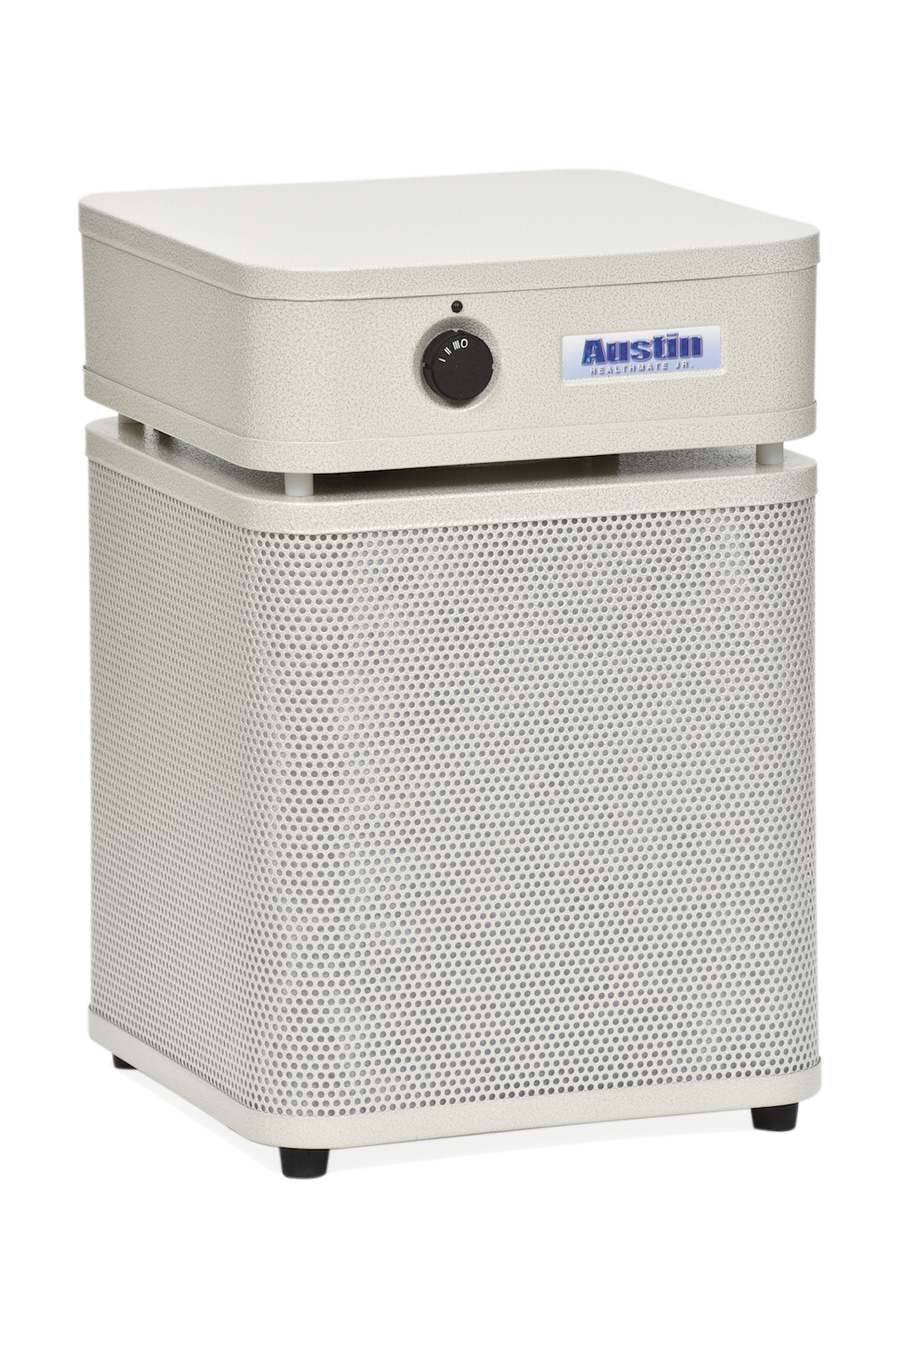 Clearance - HealthMate Junior HM200 Air Purifier RM1